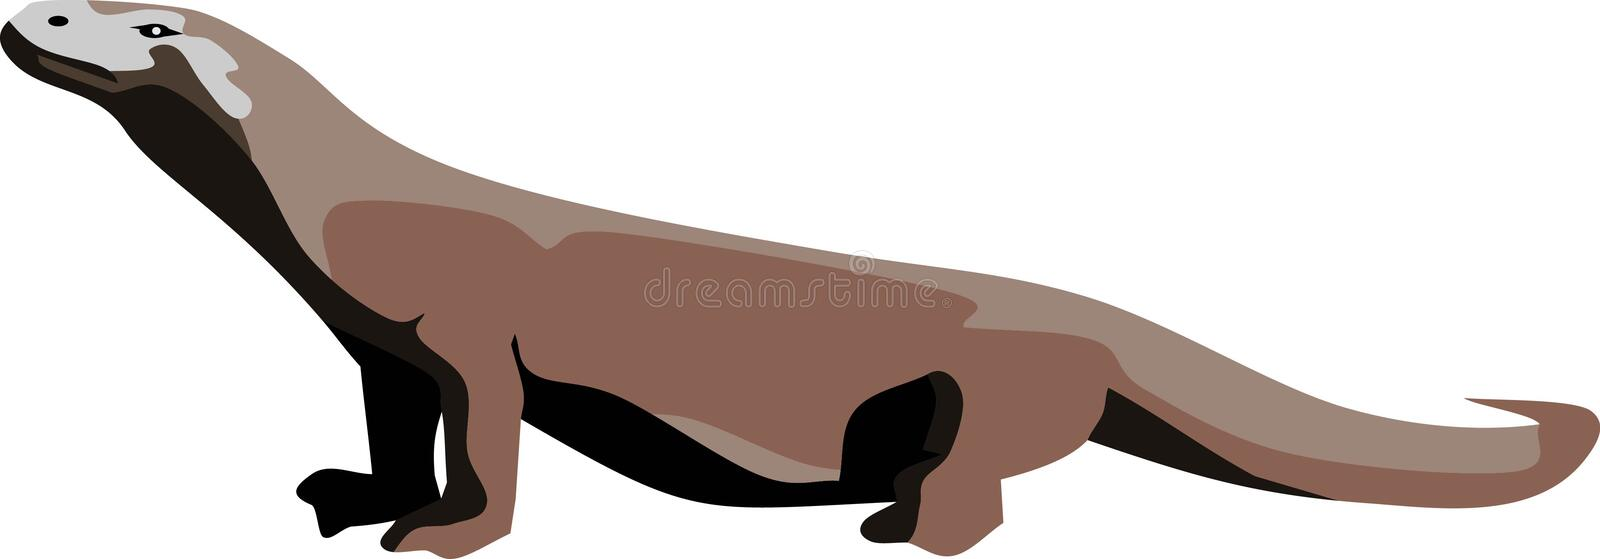 Komodo Dragon Reptile vector illustratie